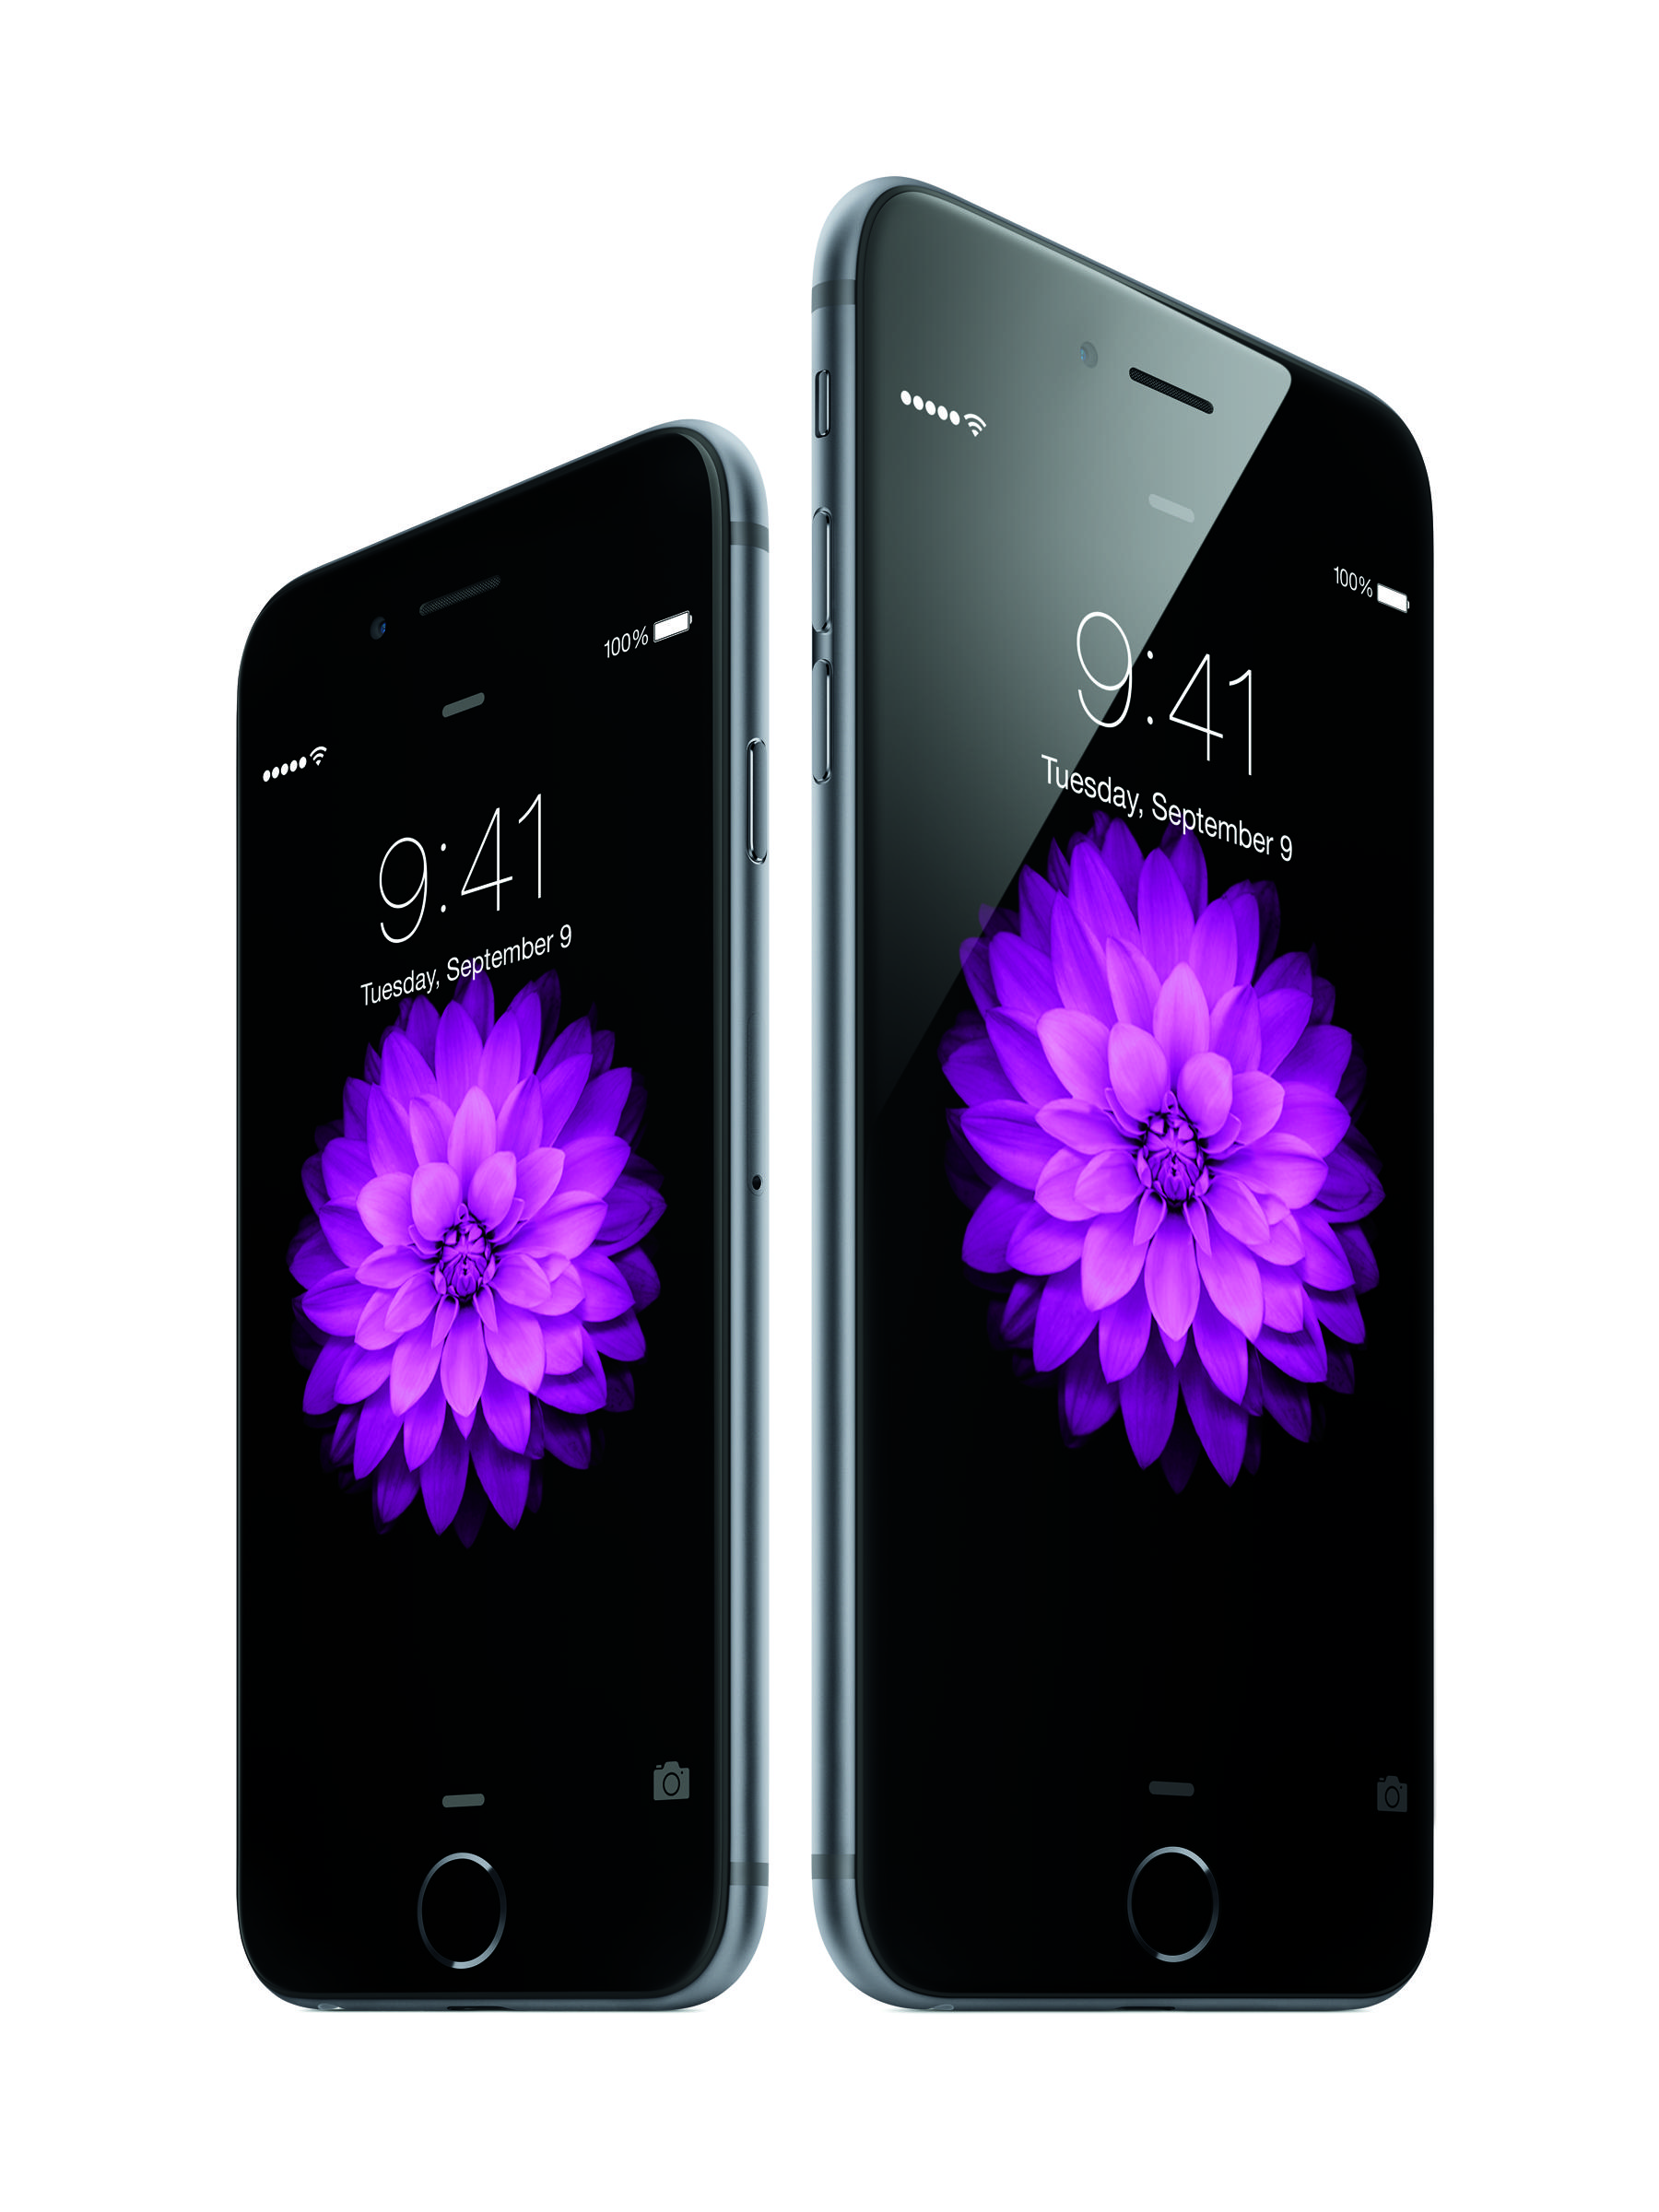 apple iphone 6 iphone 6 plus available in singapore blog. Black Bedroom Furniture Sets. Home Design Ideas